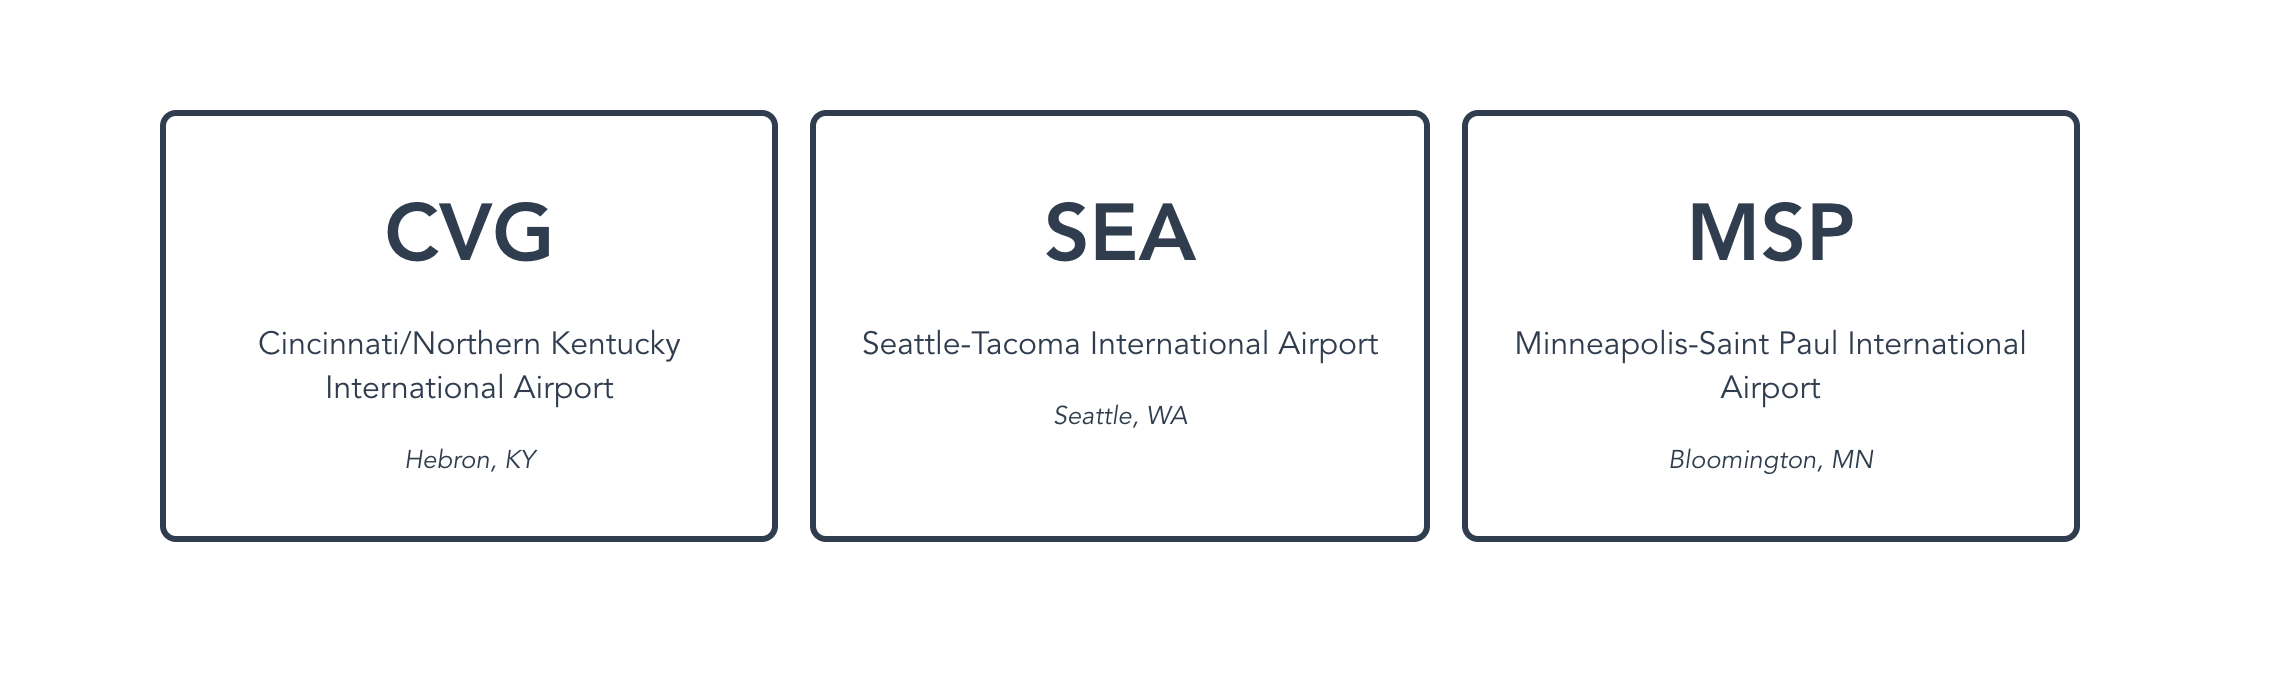 Styled cards containing airport data from the staging dataset.